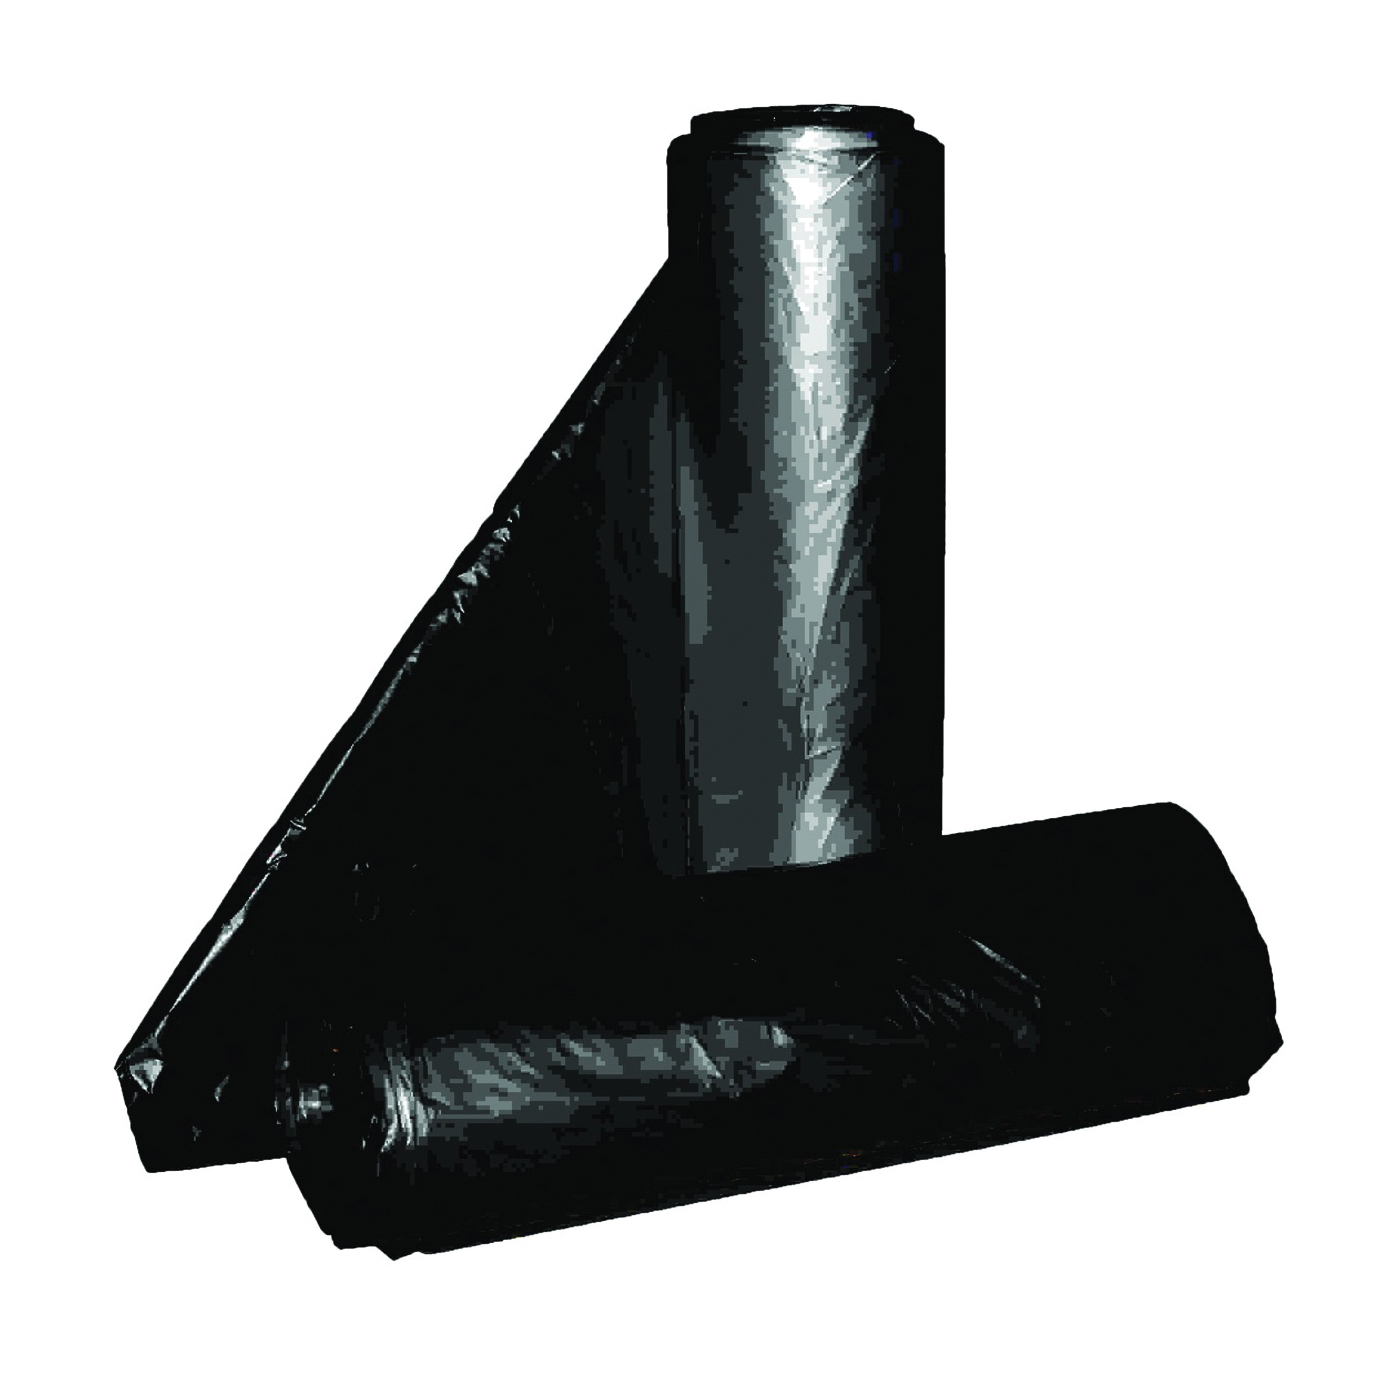 Picture of ALUF PLASTICS RL Series RL-4347XXH Can Liner, 56 gal Capacity, Repro Blend, Black